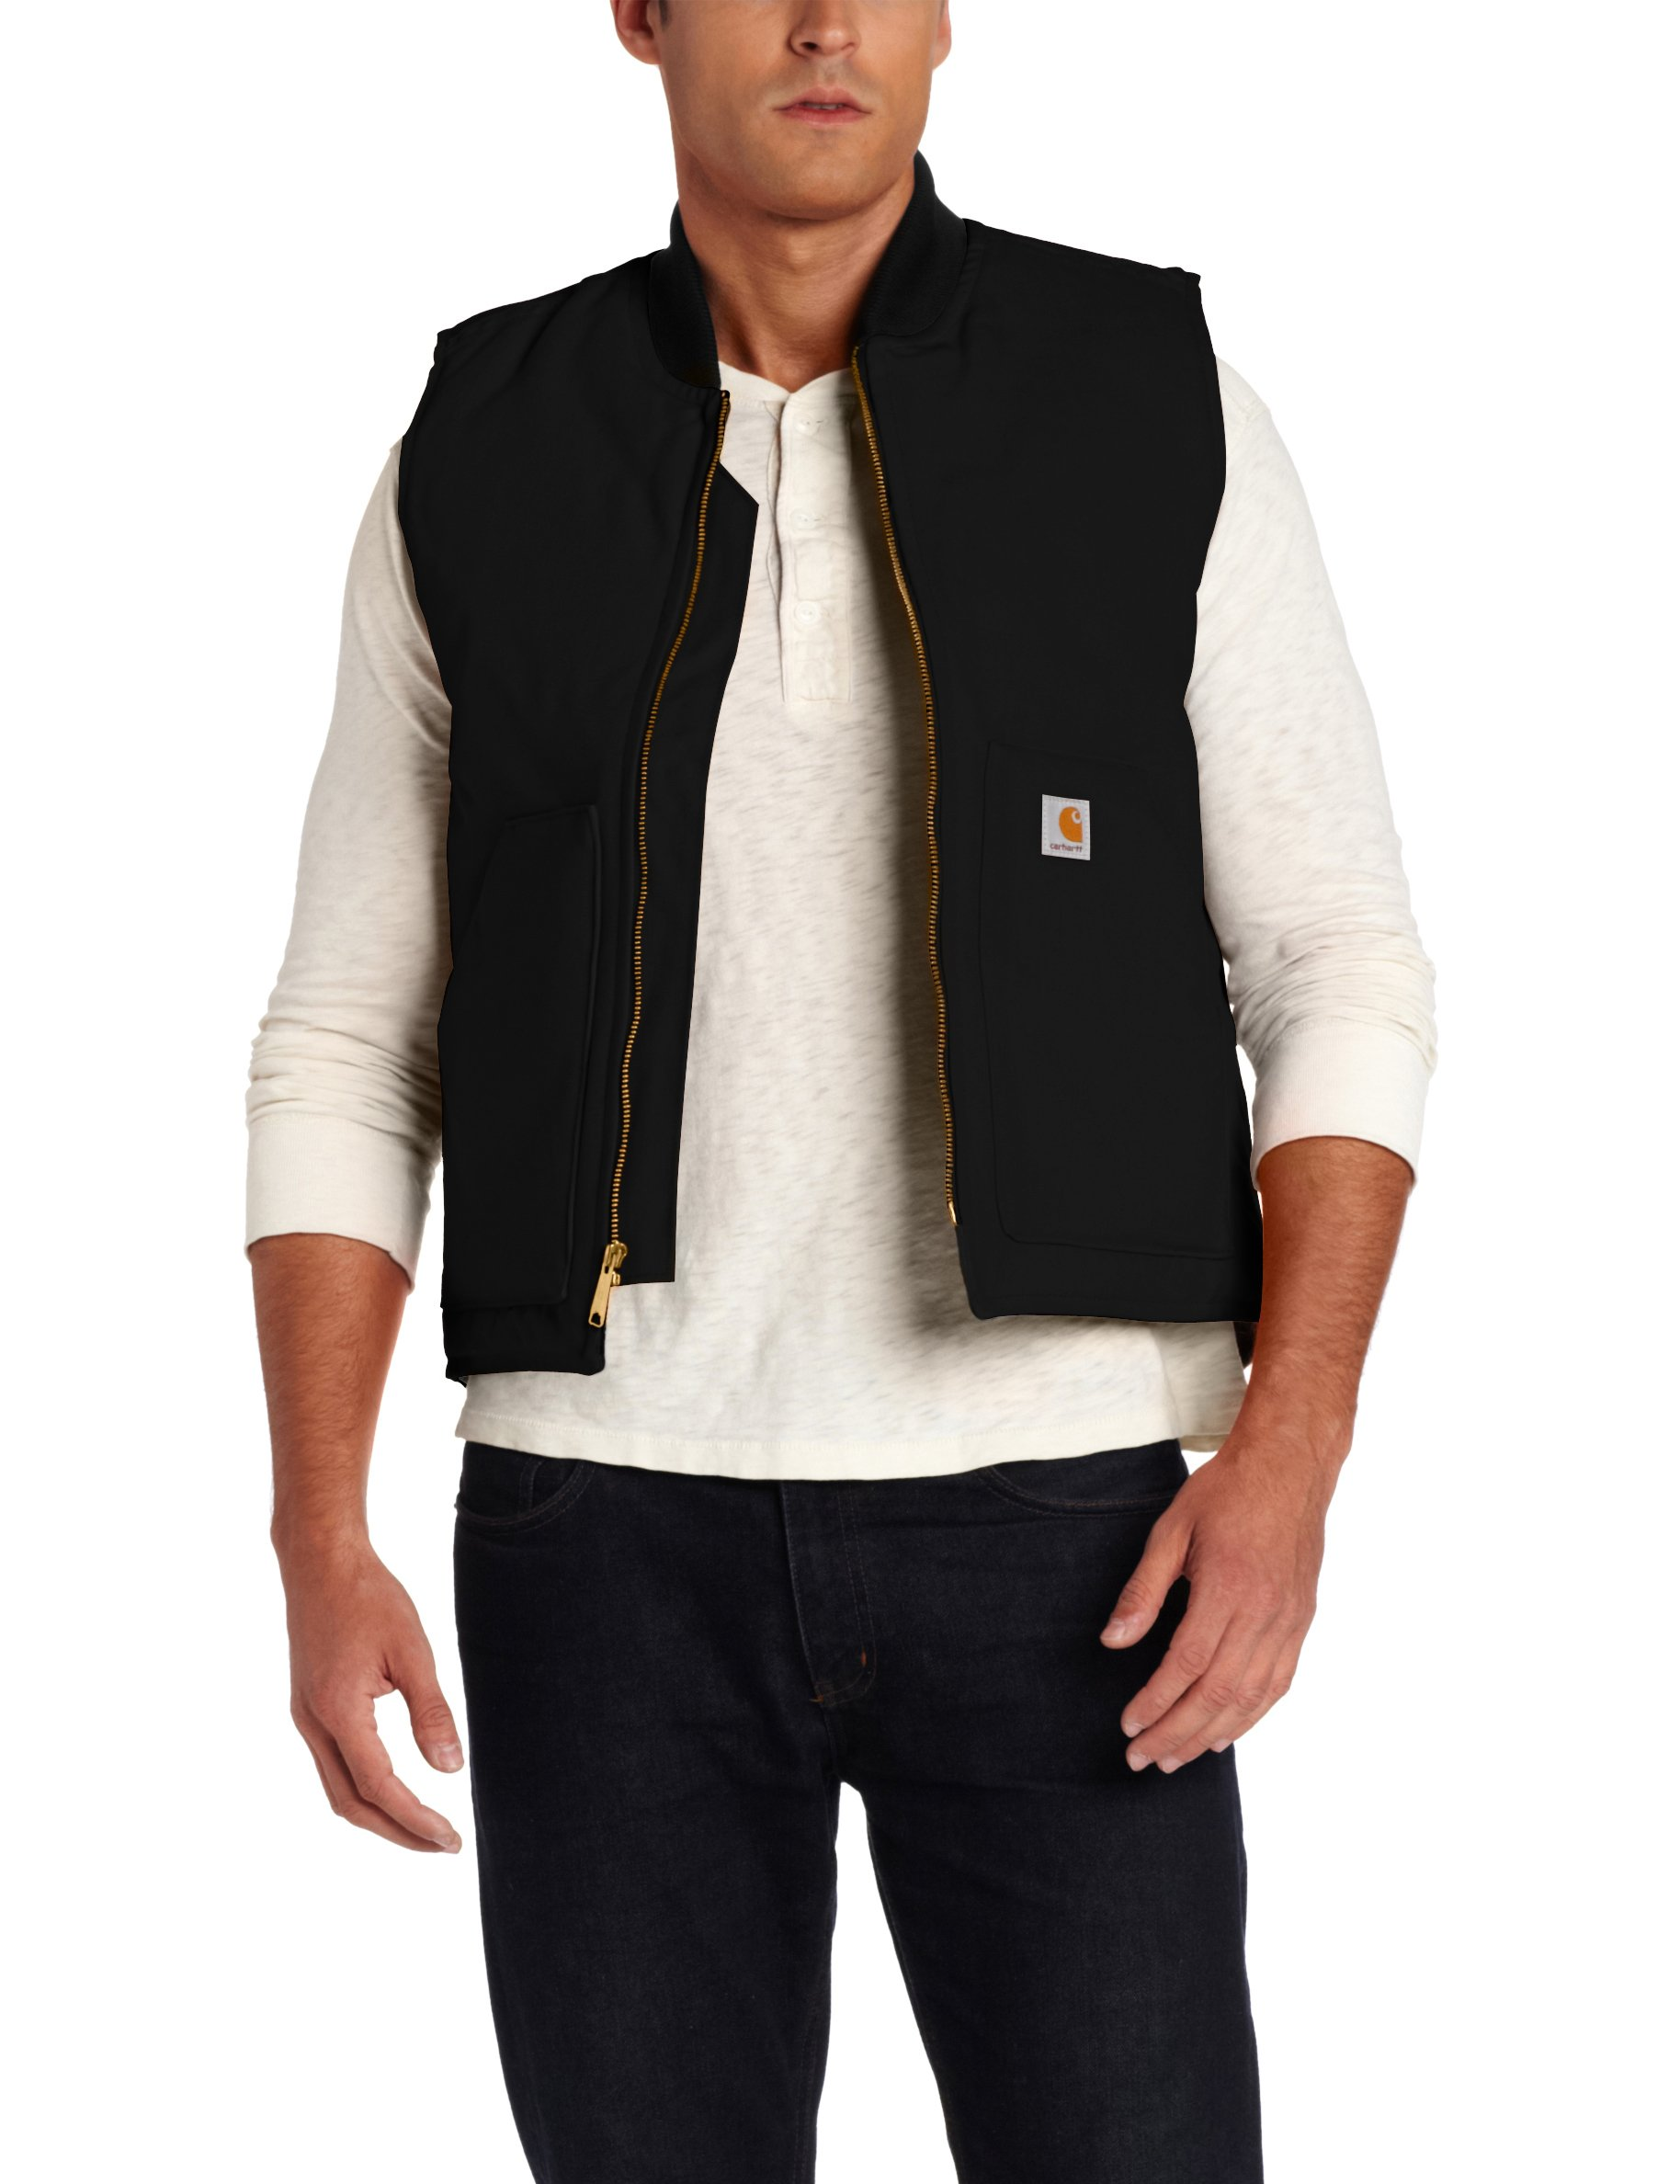 Carhartt Men's Sandstone Vest Arctic Quilt Lined,Black,Medium by Carhartt